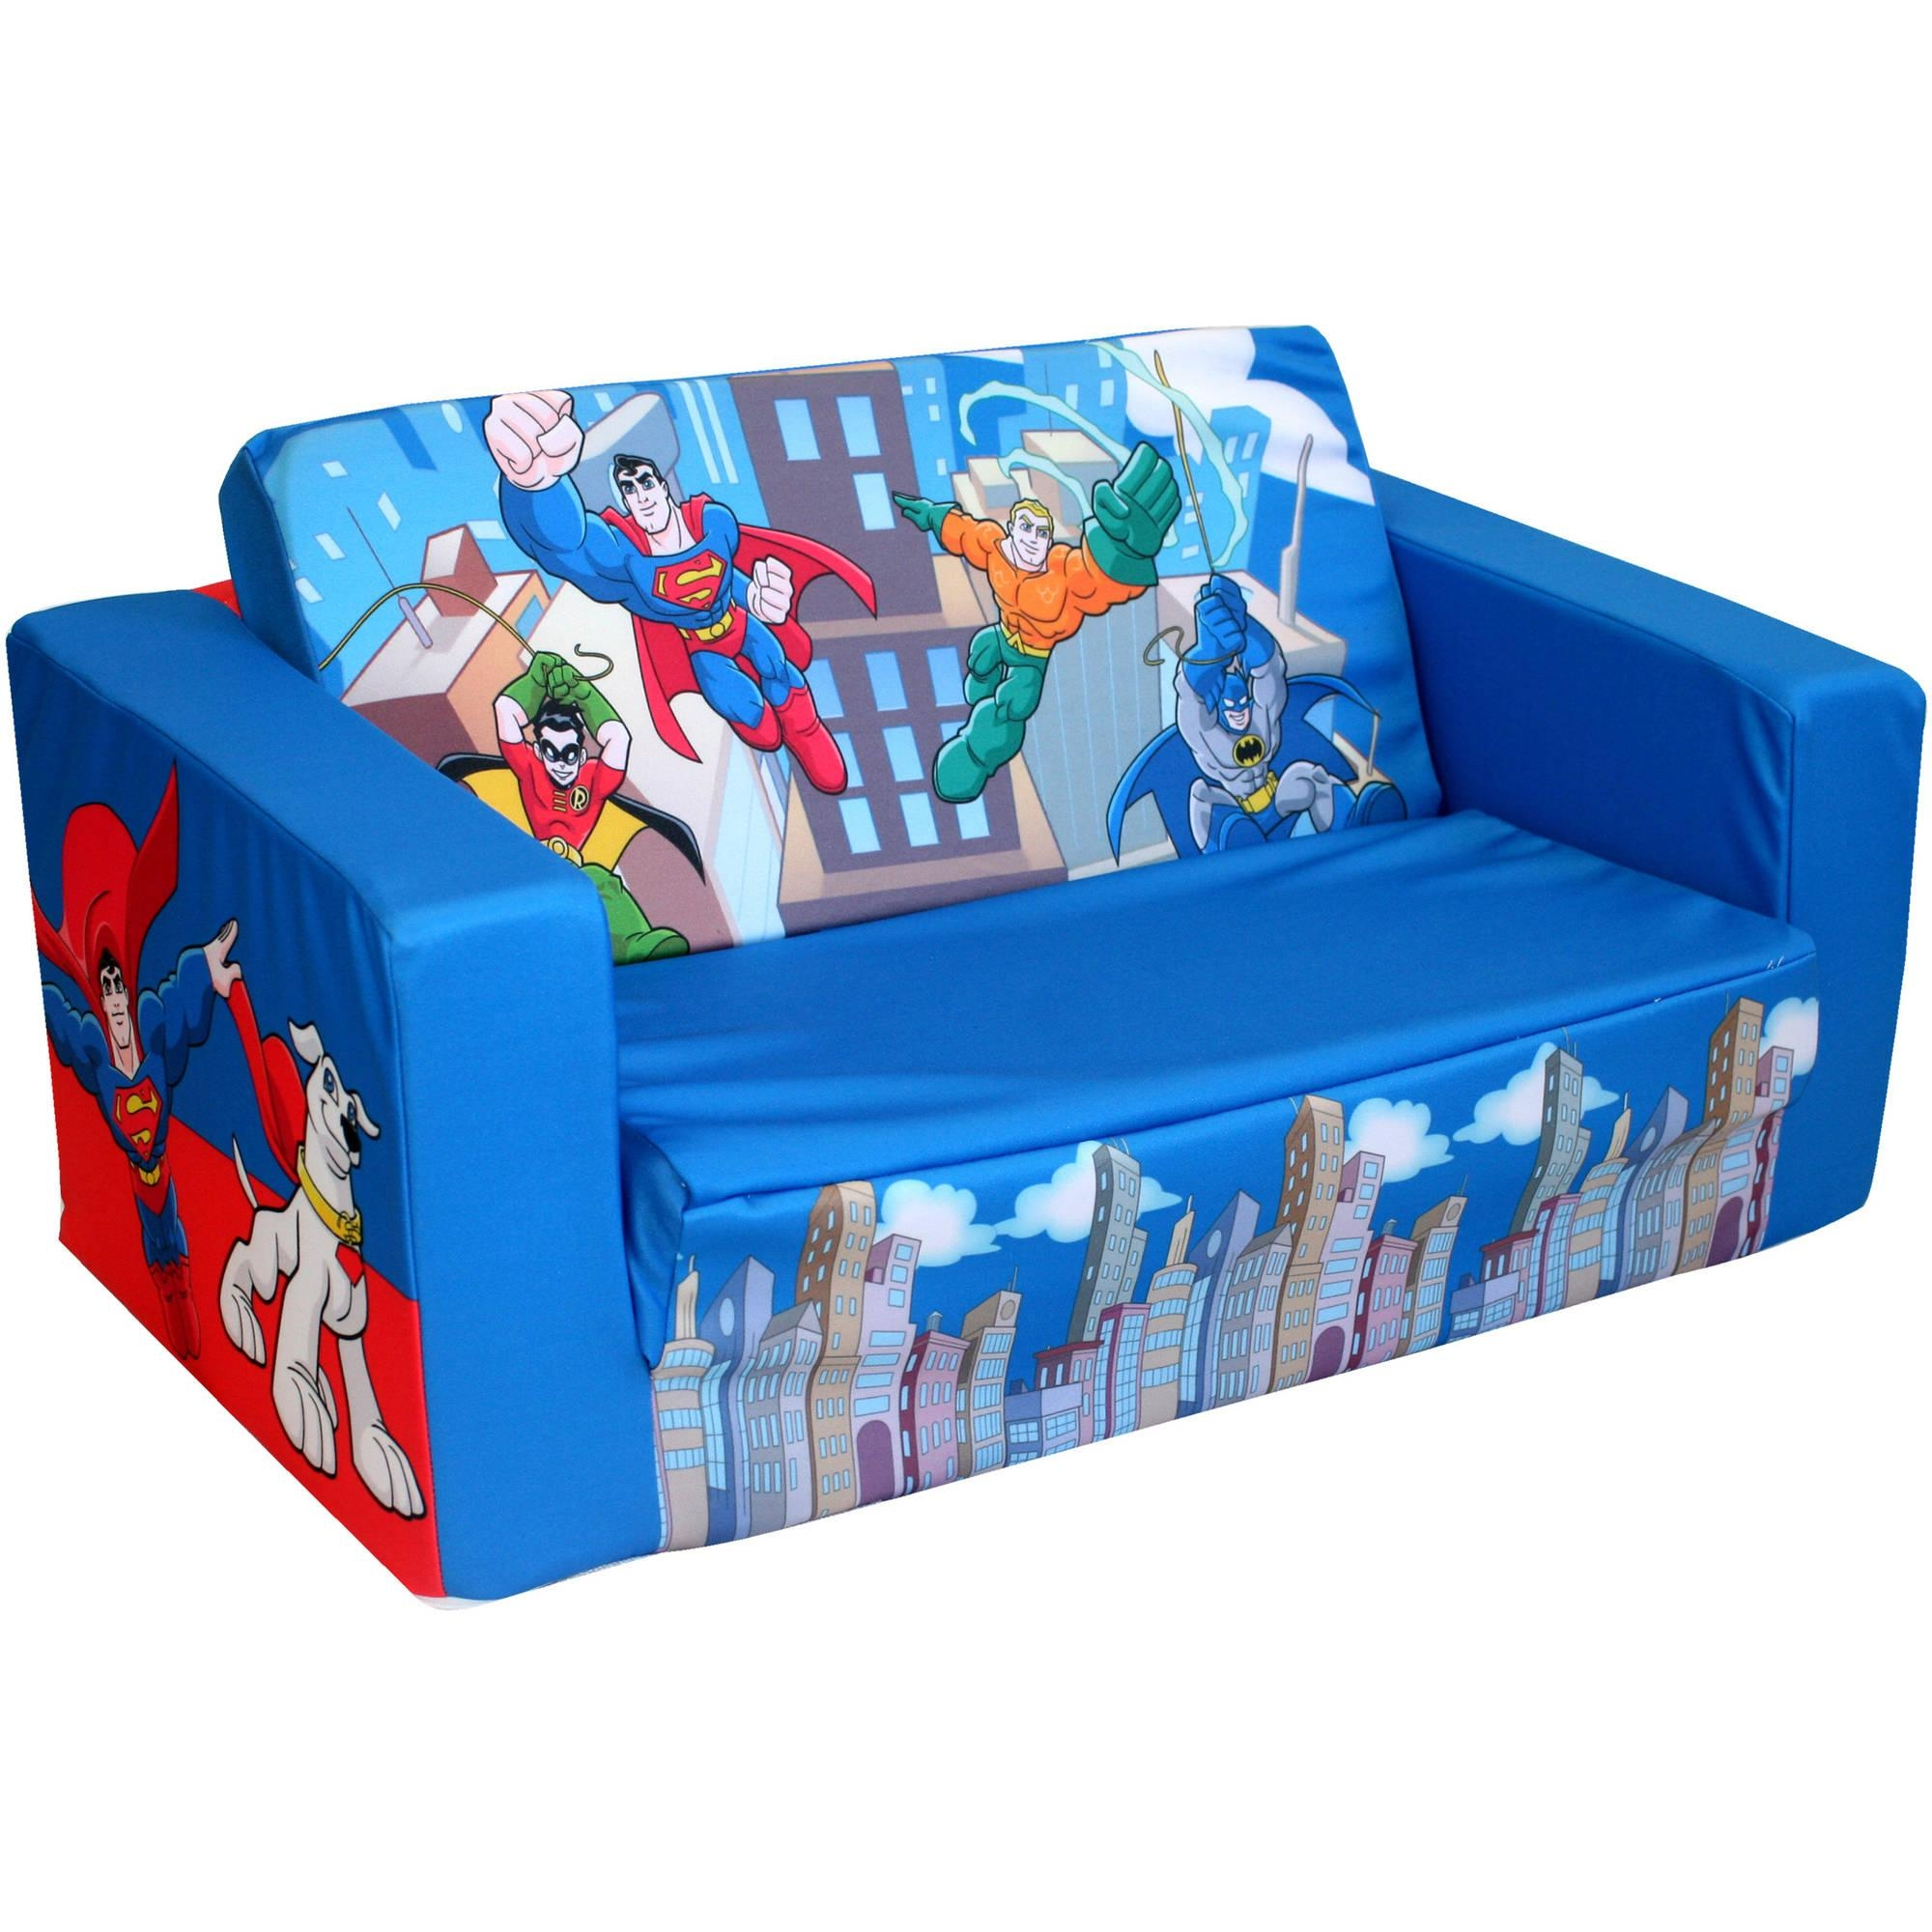 Dc Super Friends Mini Heroes Kids Flip S – Walmart With Regard To Flip Open Sofas For Toddlers (Image 1 of 20)